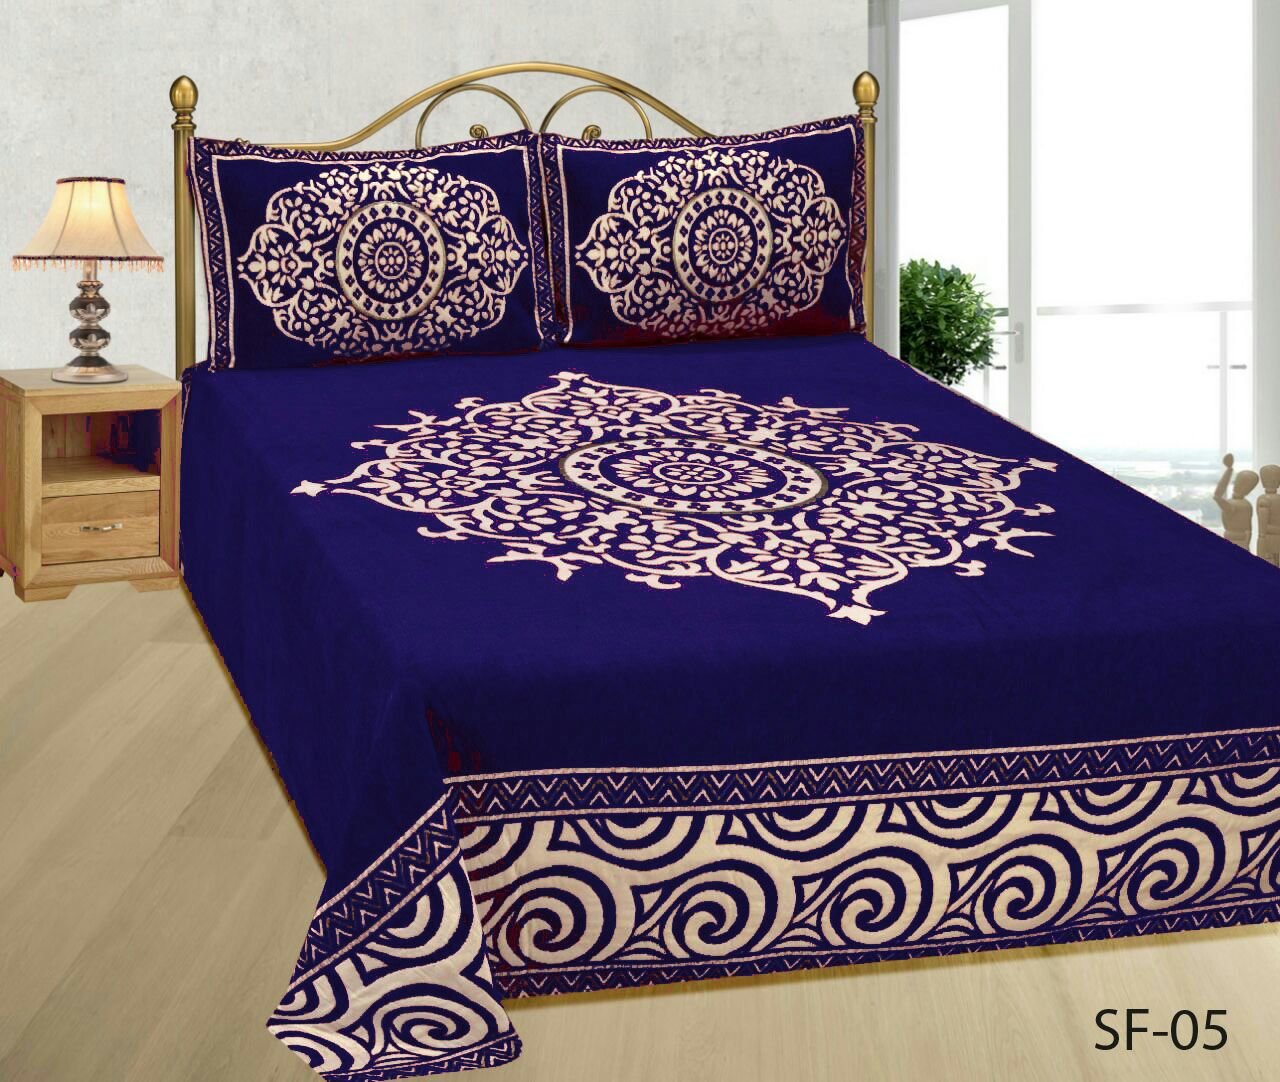 Medieval Royal Arts Heavy Chenille Bedcover- Royal Blue